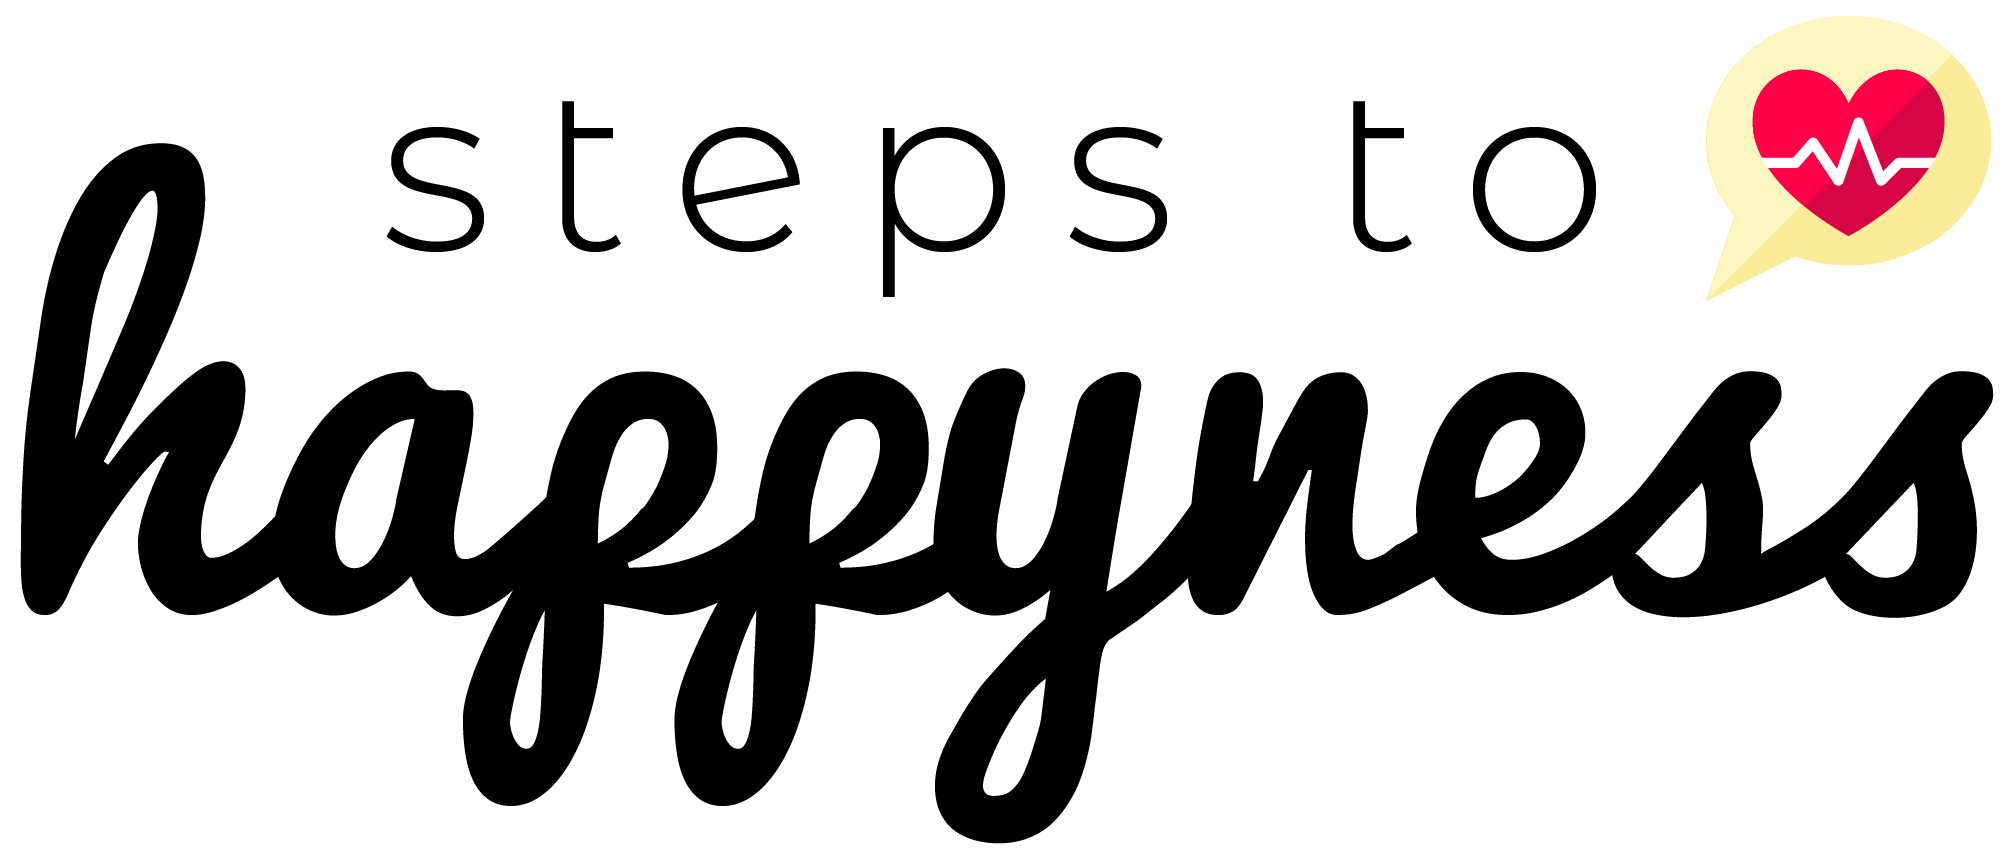 Steps to Happyness